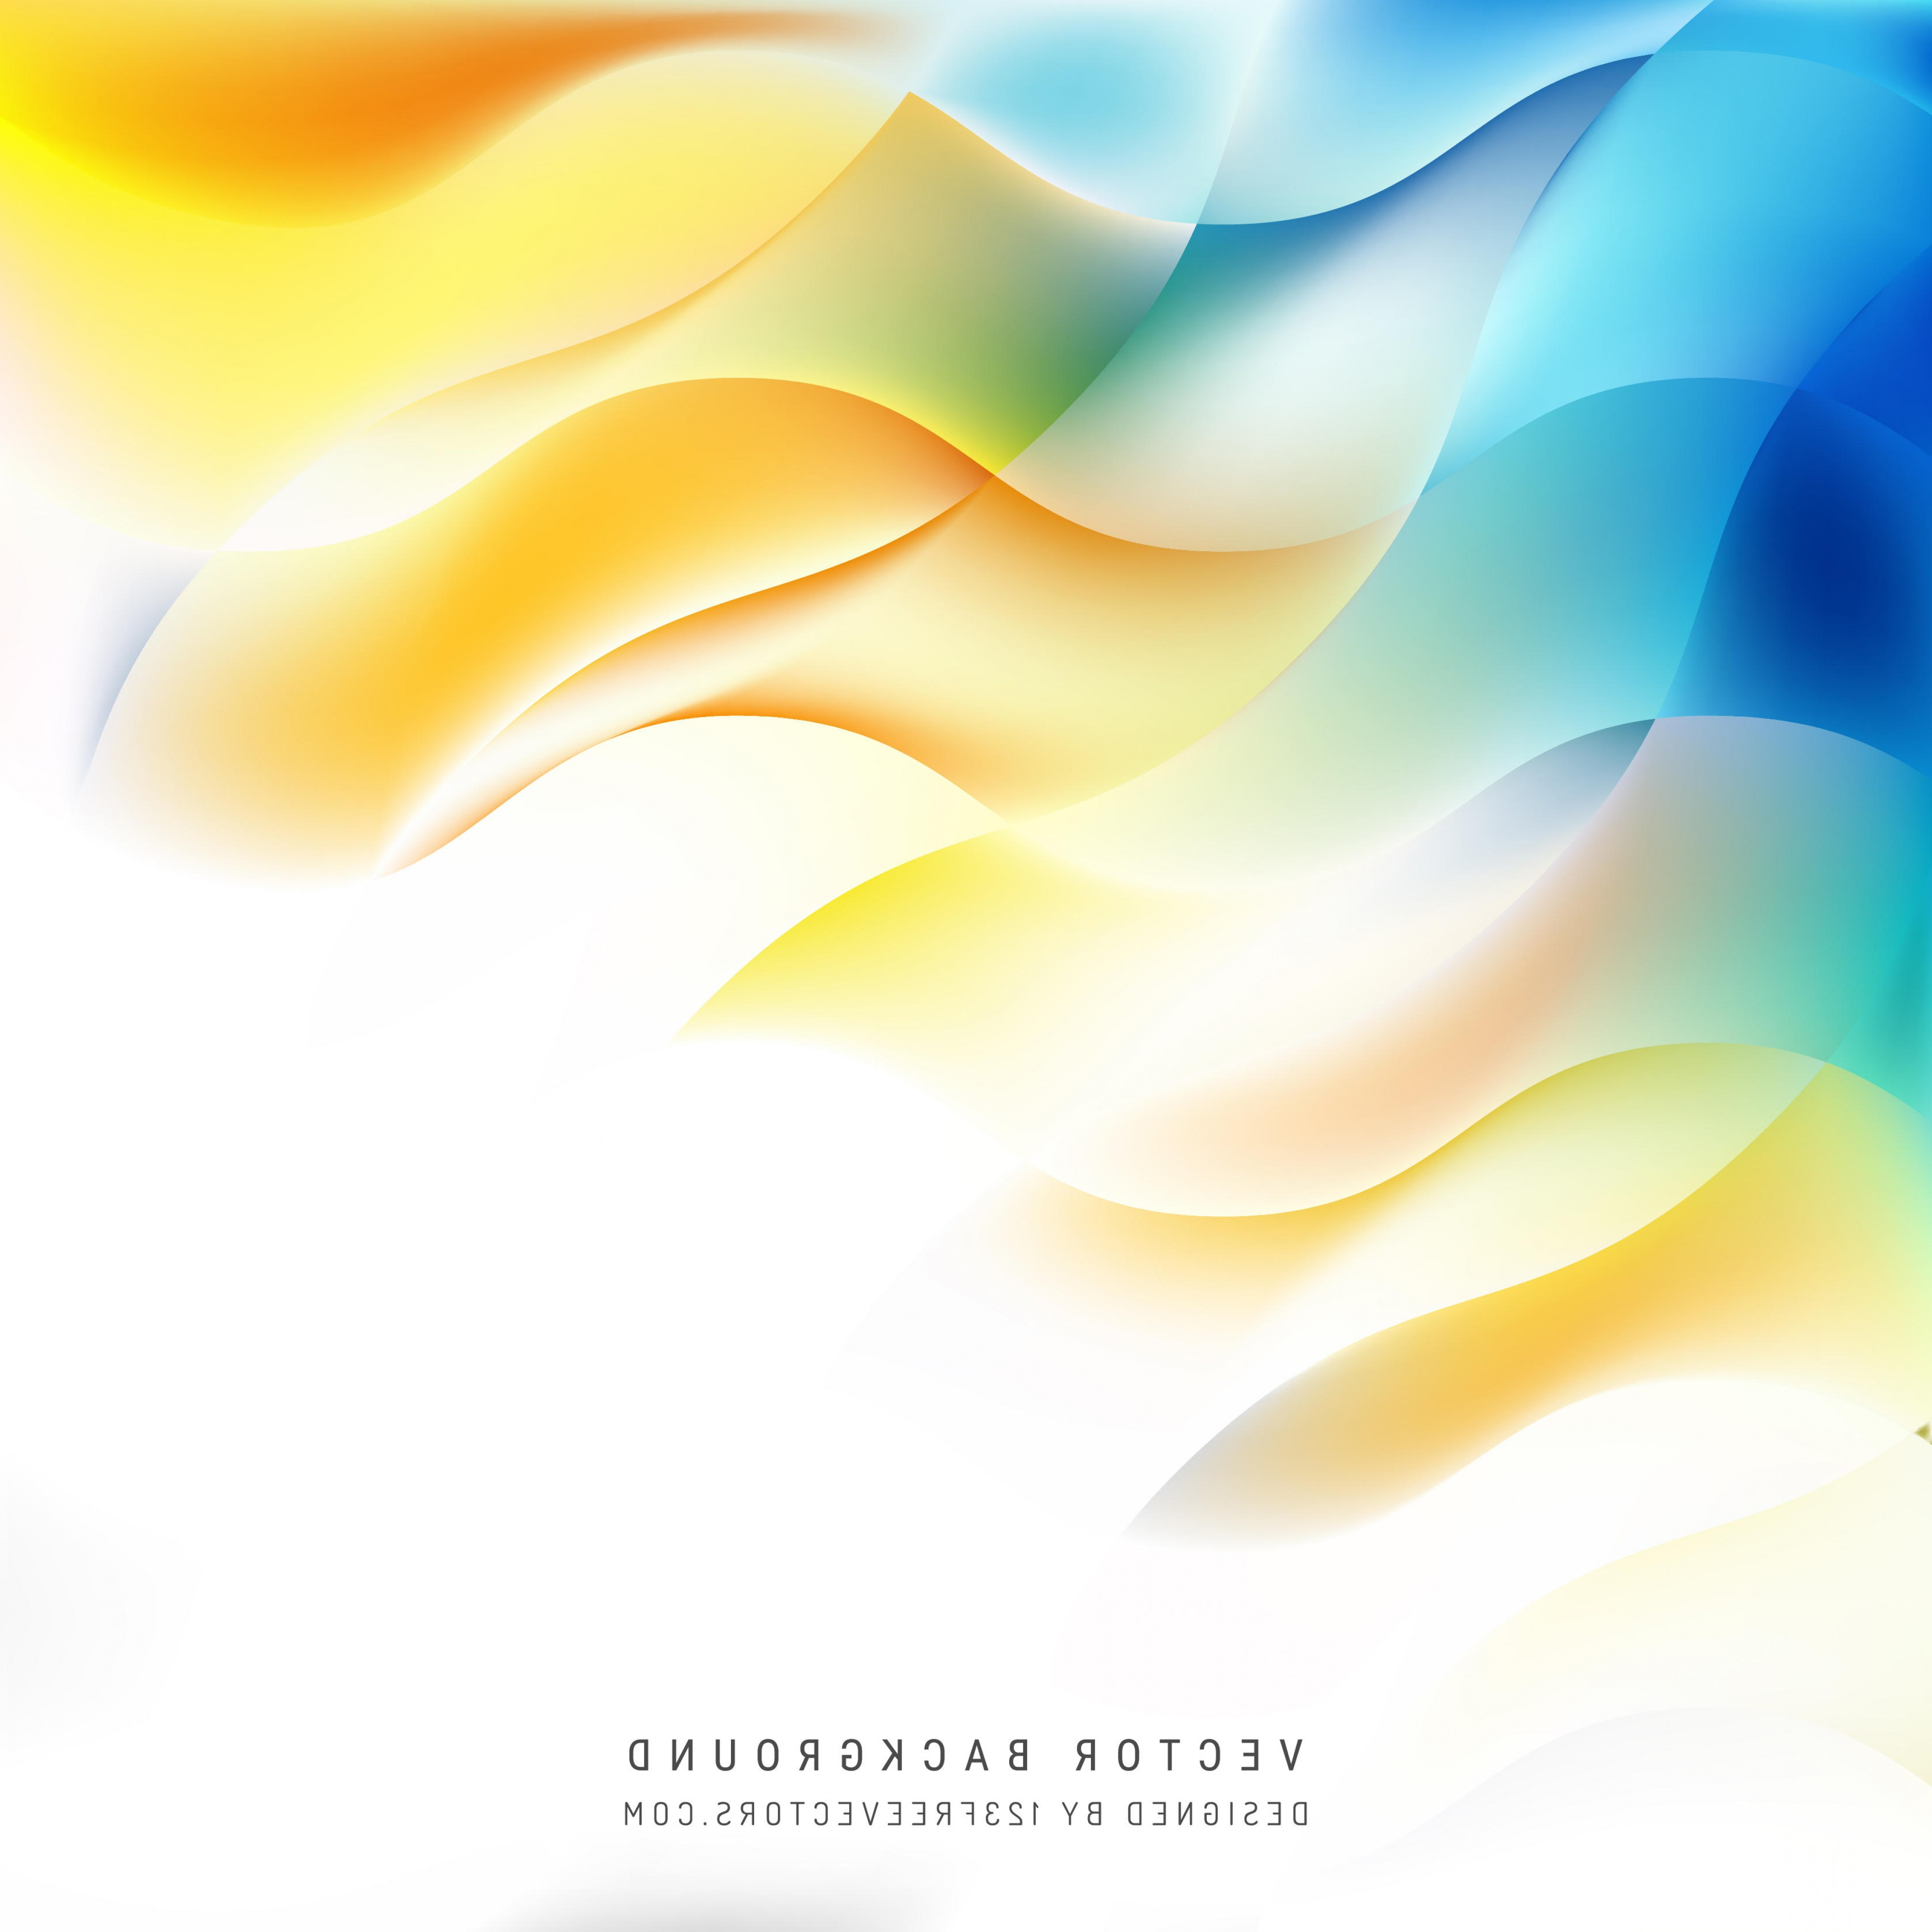 Free Vector Backgrounds Illustrator: Abstract Light Colorful Background Illustrator